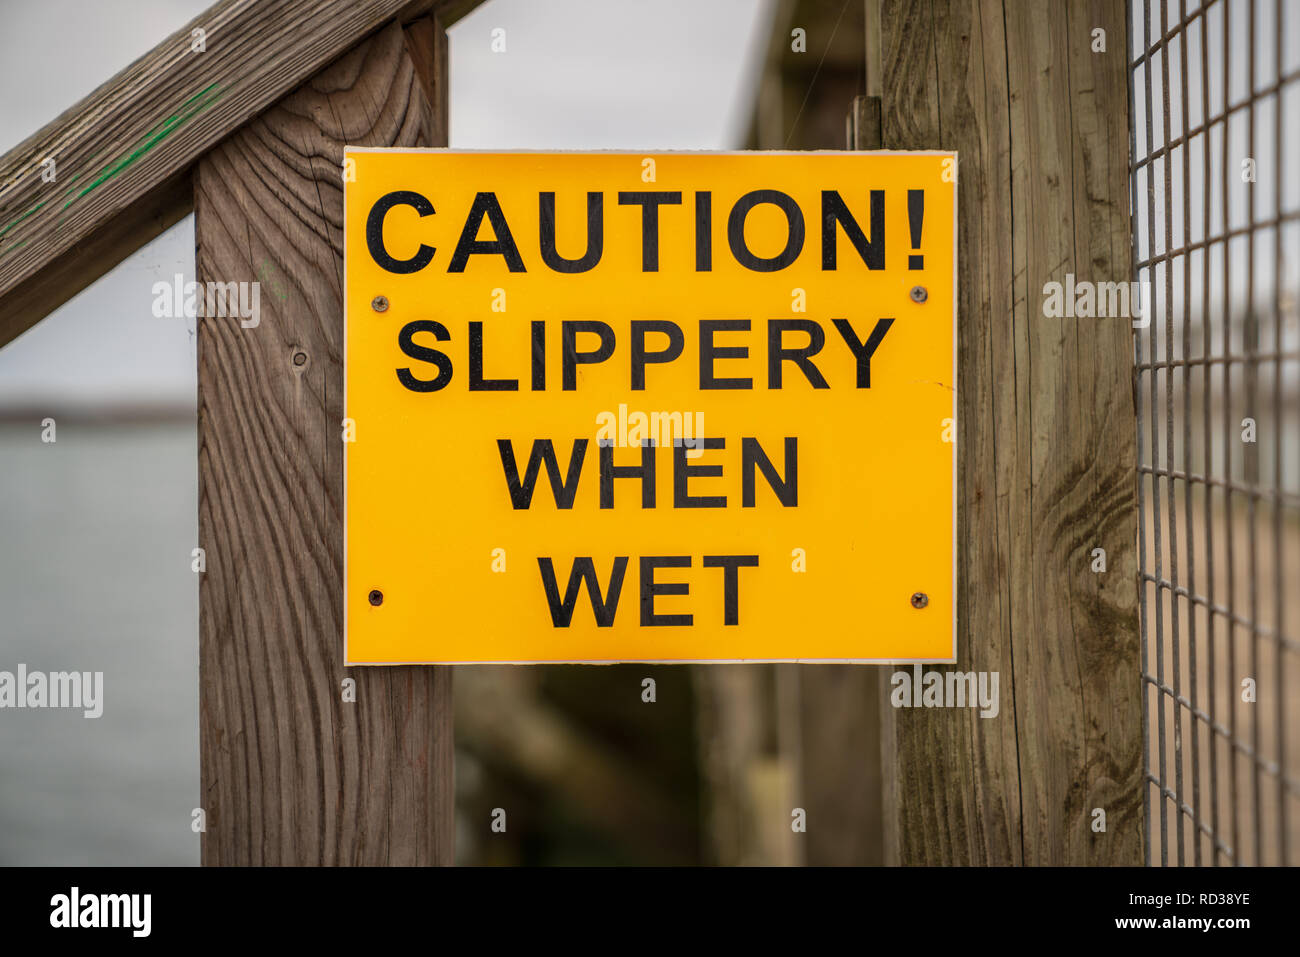 Sign: Caution! Slippery when wet, seen in Amble in Northumberland, England, UK - Stock Image